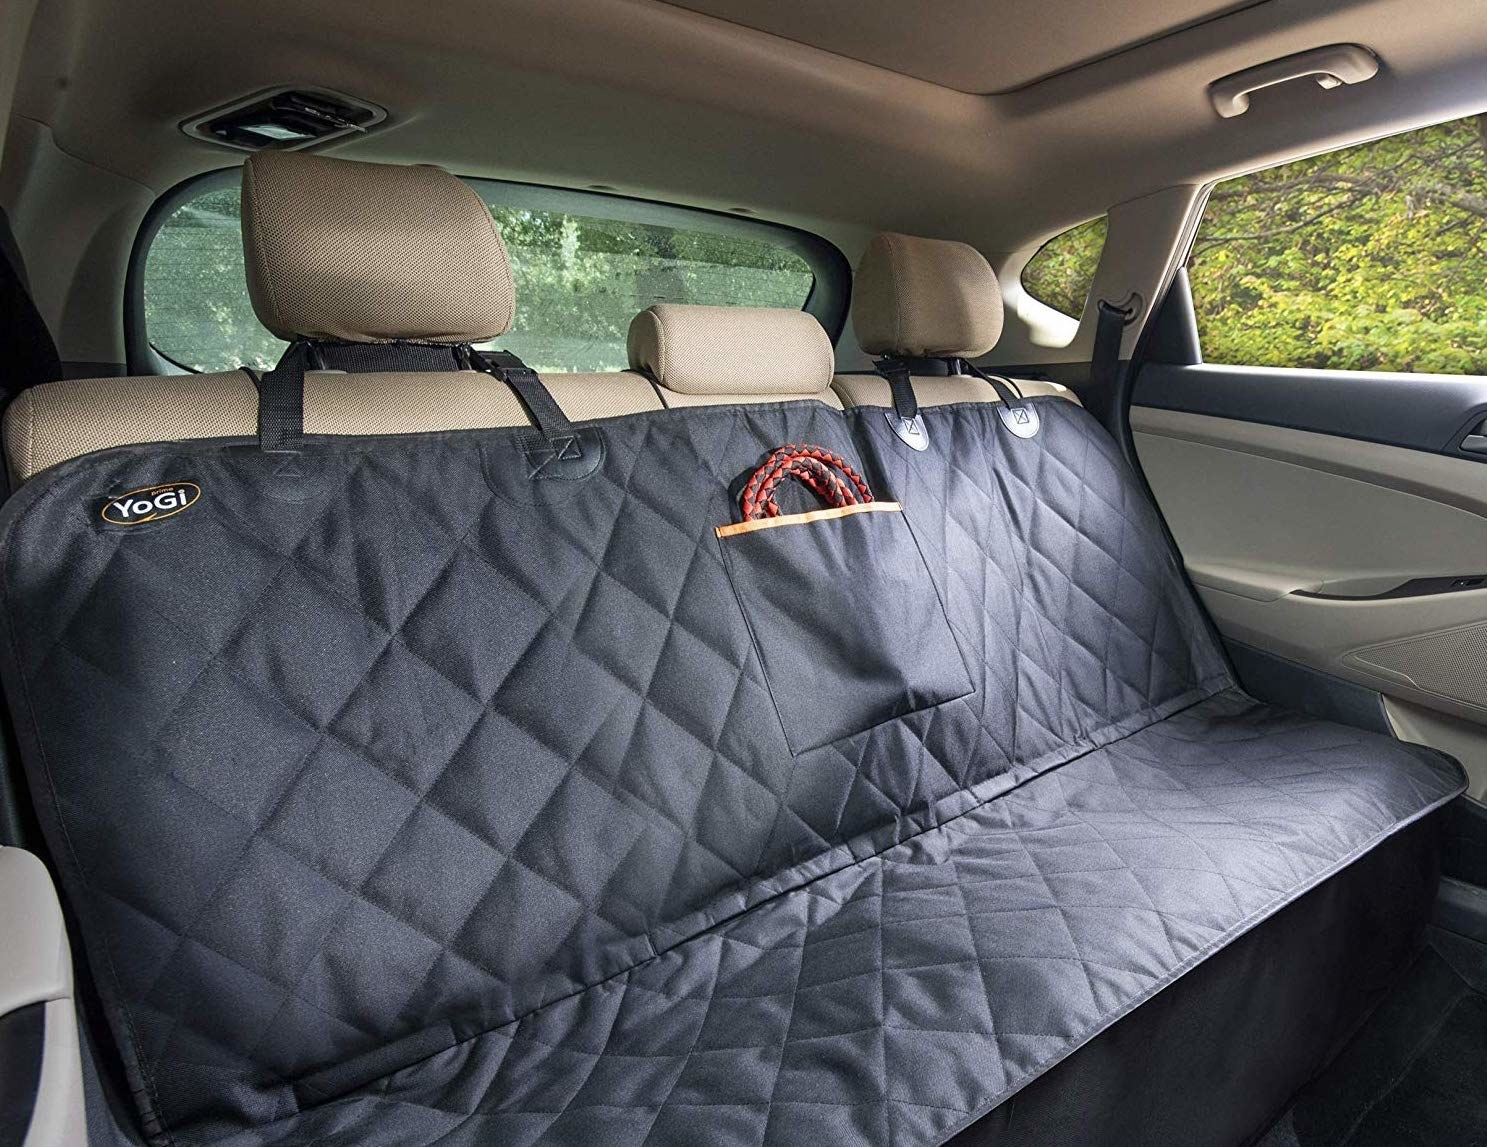 The backseat of a car with the car seat-cover on it